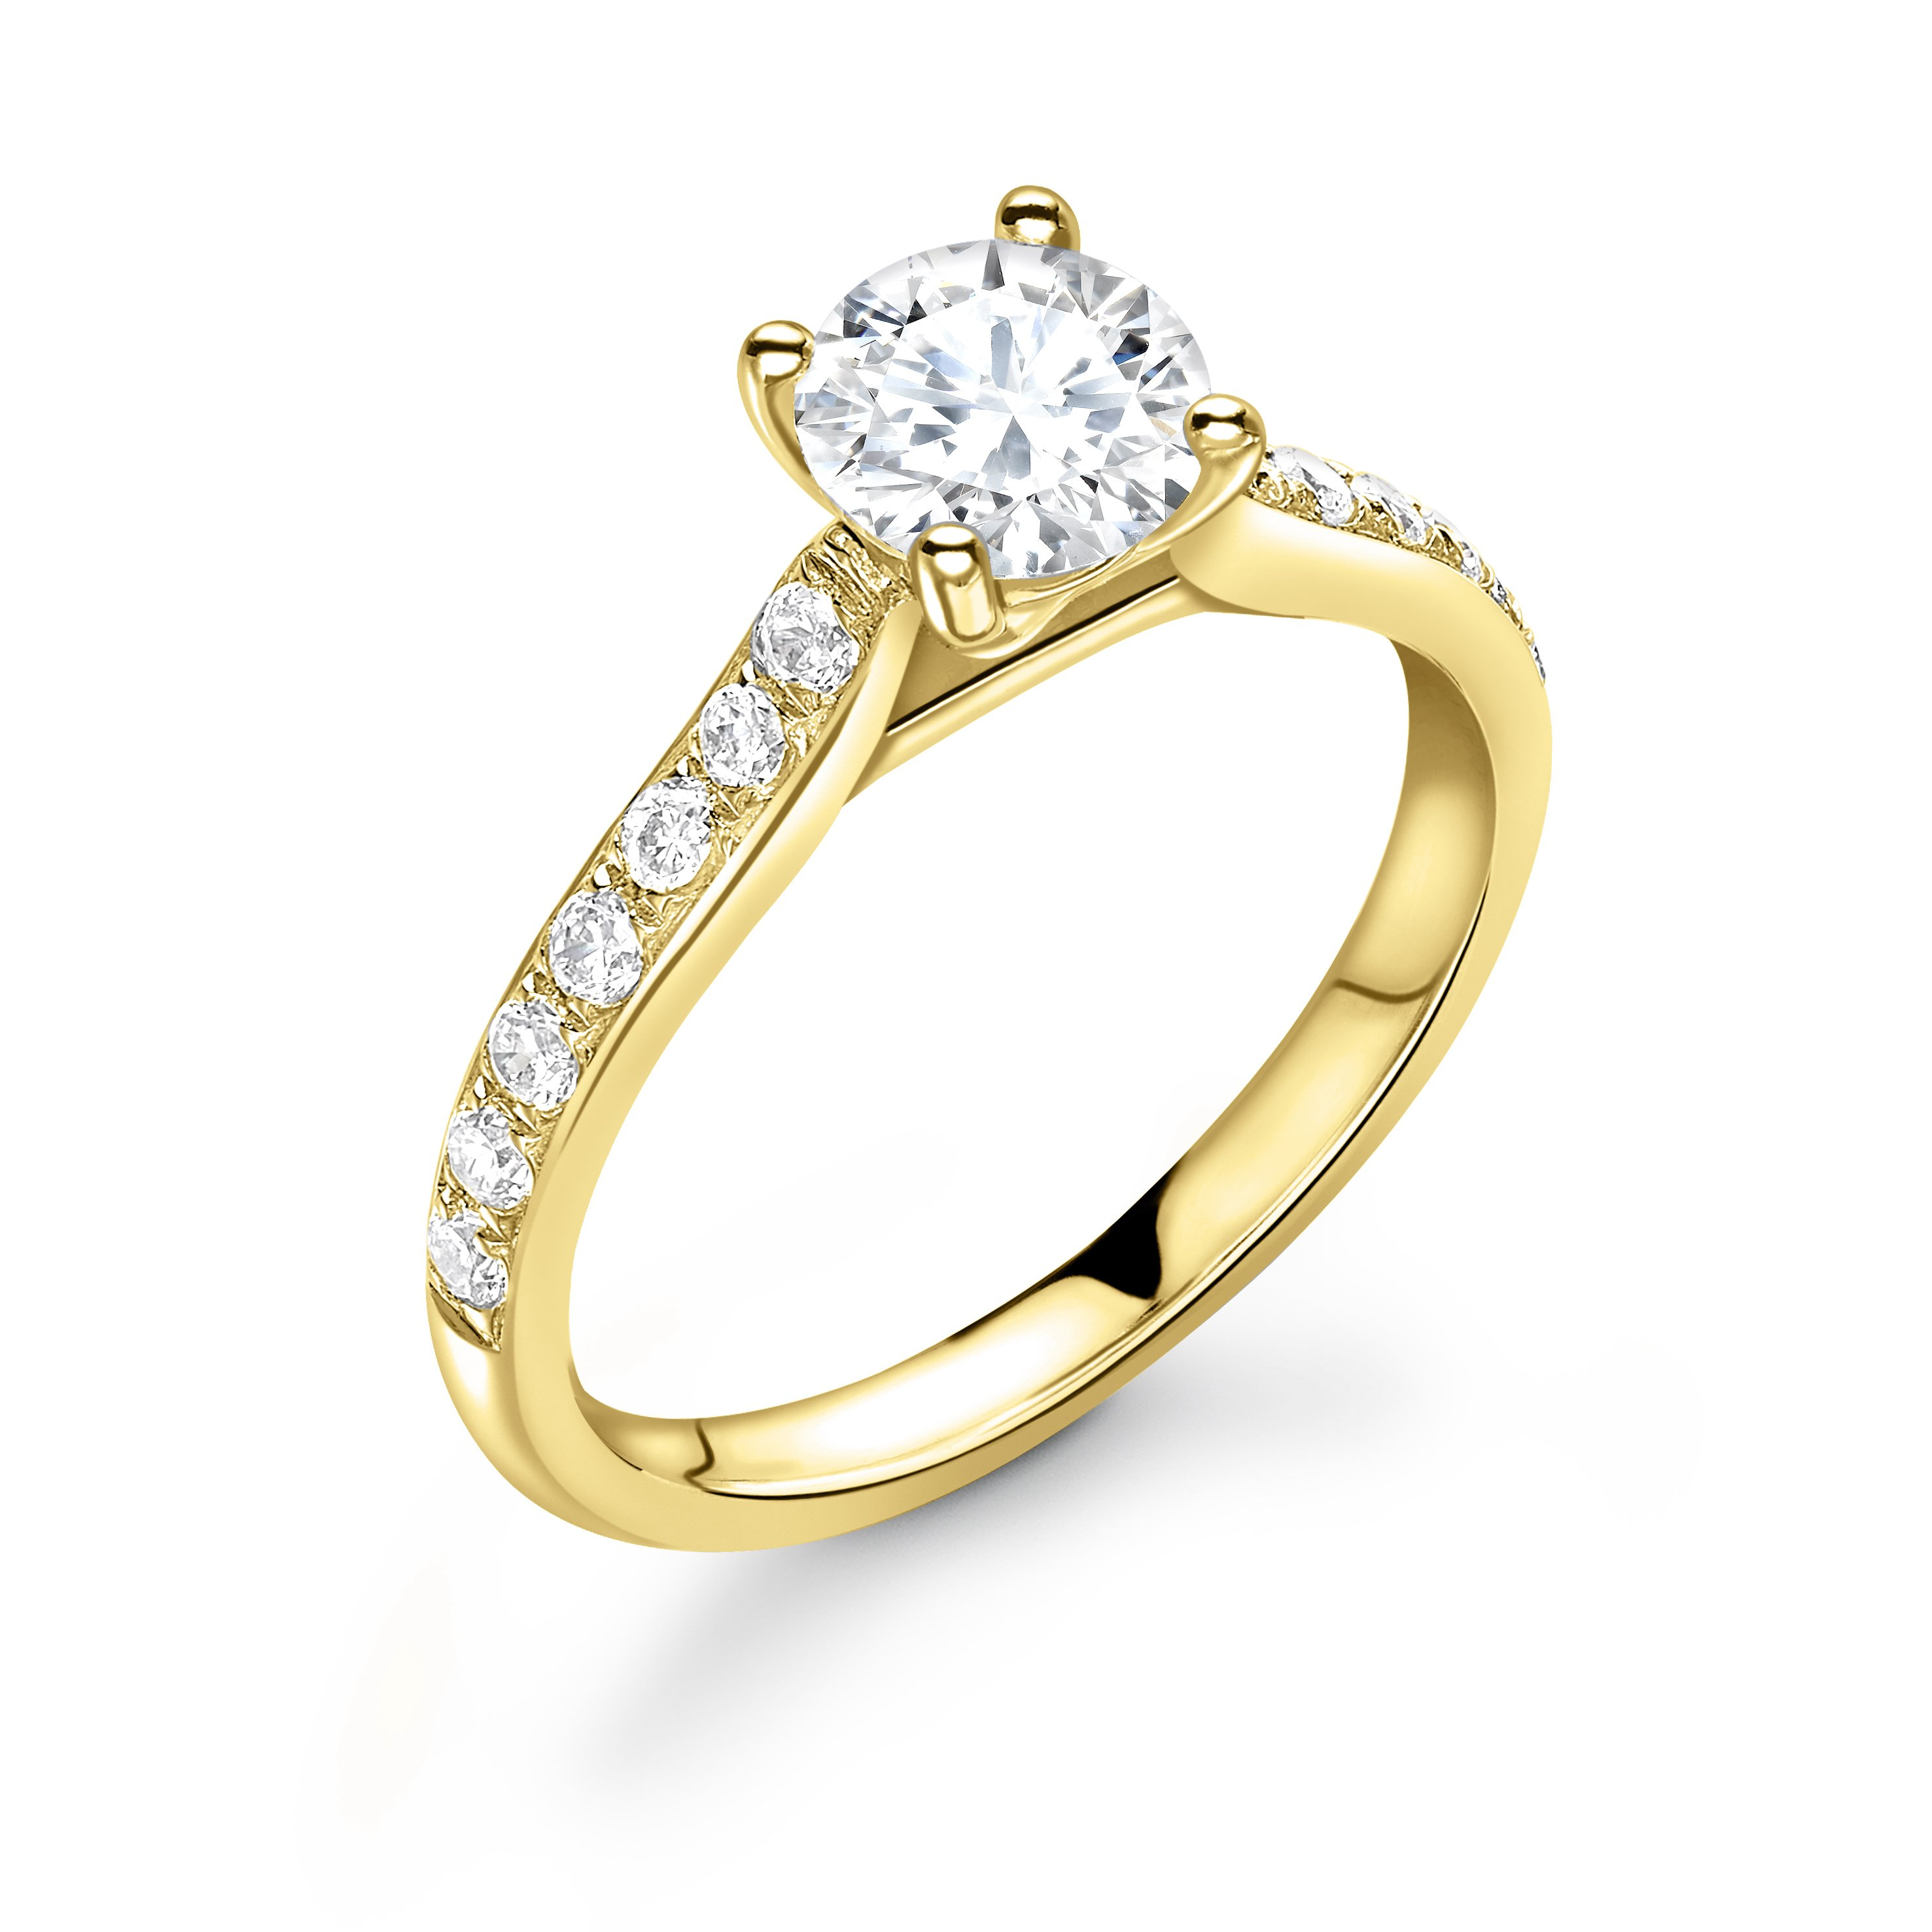 Pave Set Diamonds on Shoulder Side Stone Diamond Engagement Rings